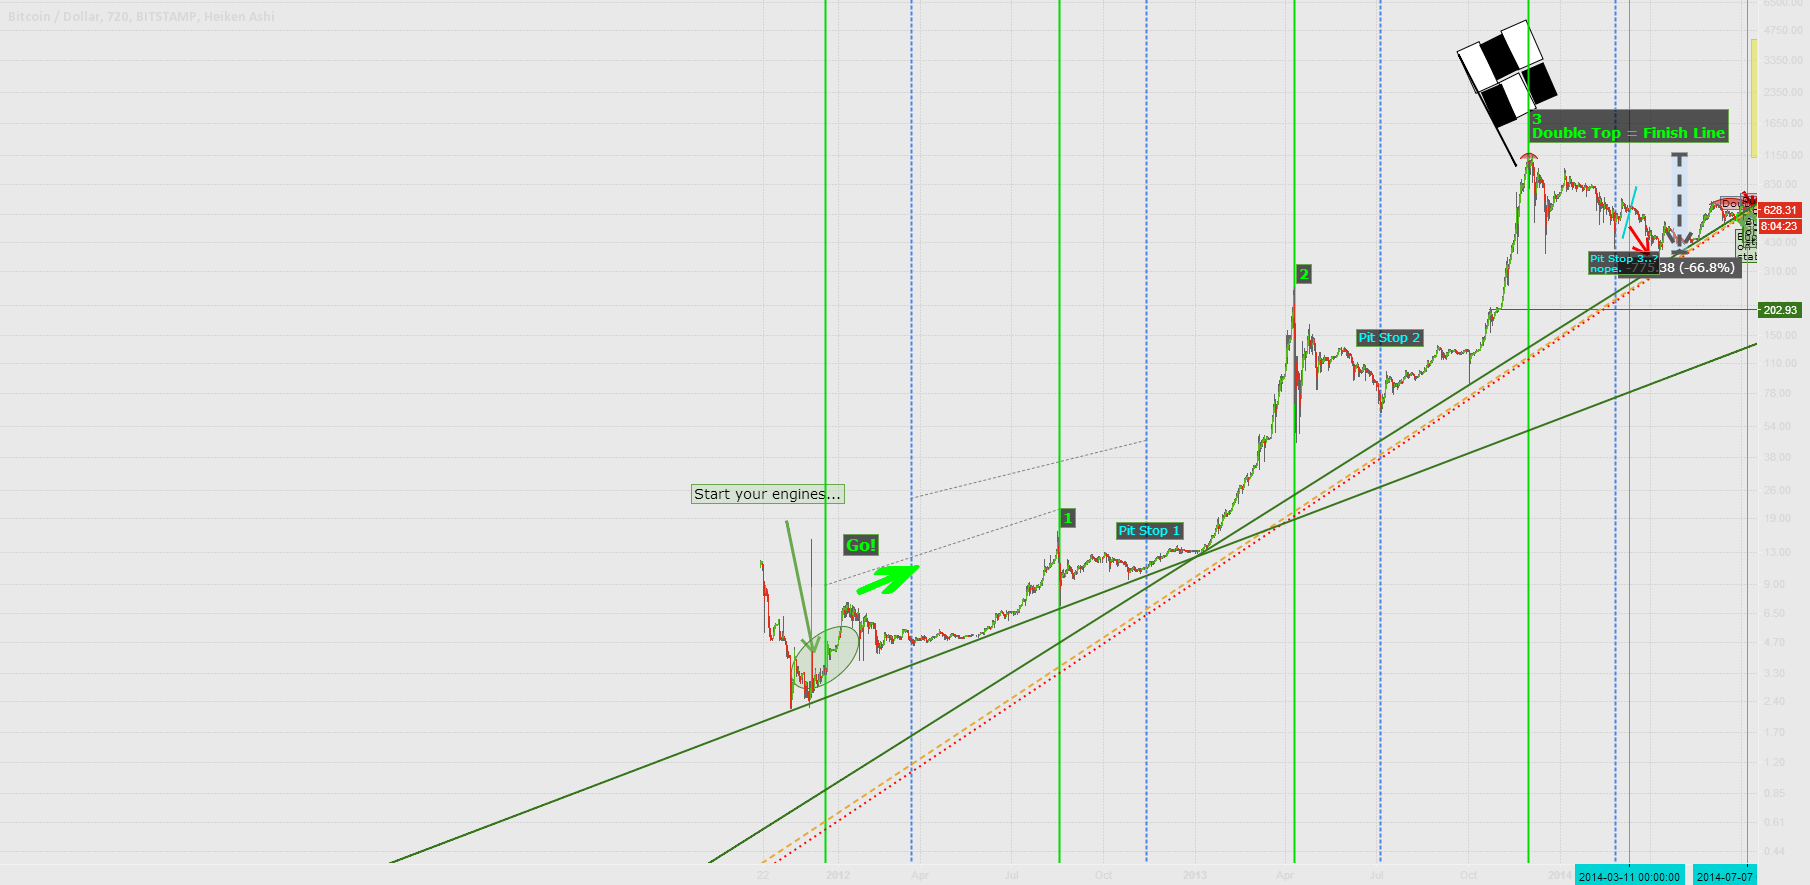 The Great Bitcoin Rally and why it will end on 17.10.2014 12:00